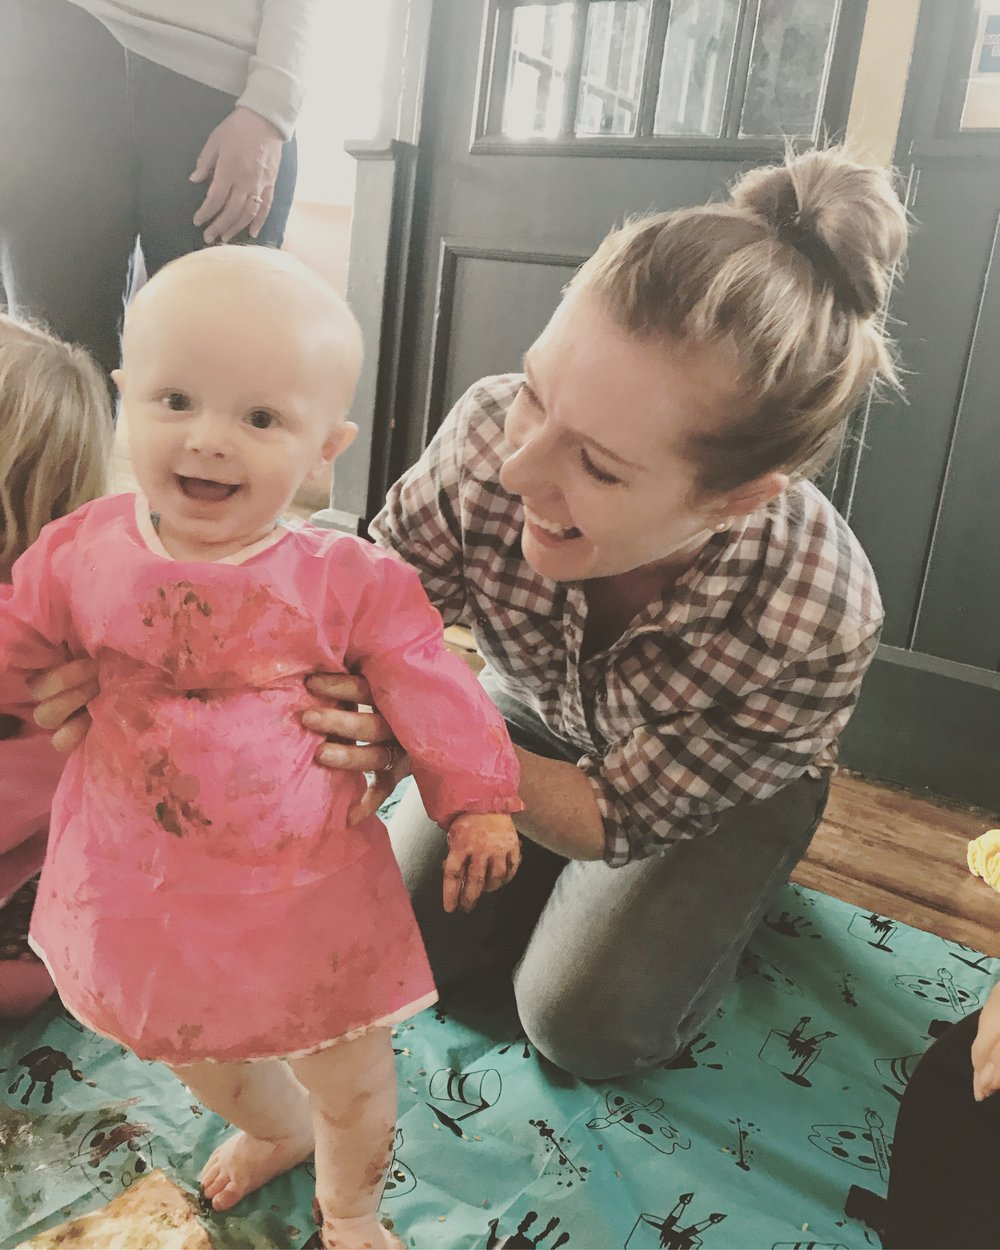 Baby wearing pink apron covered in mess being held up by his mother